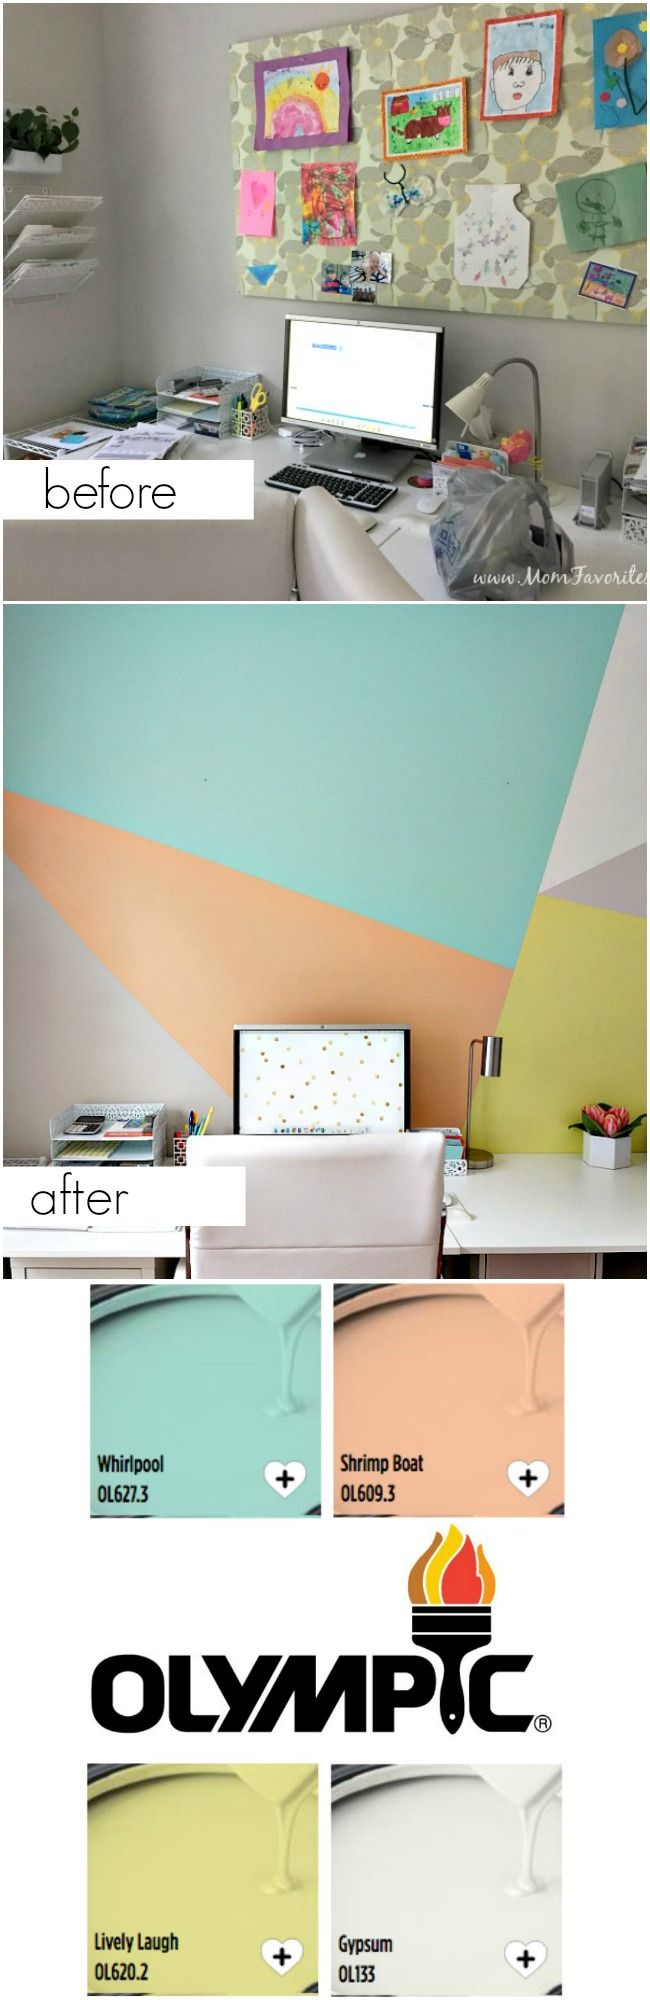 Accent walls have quickly become one of